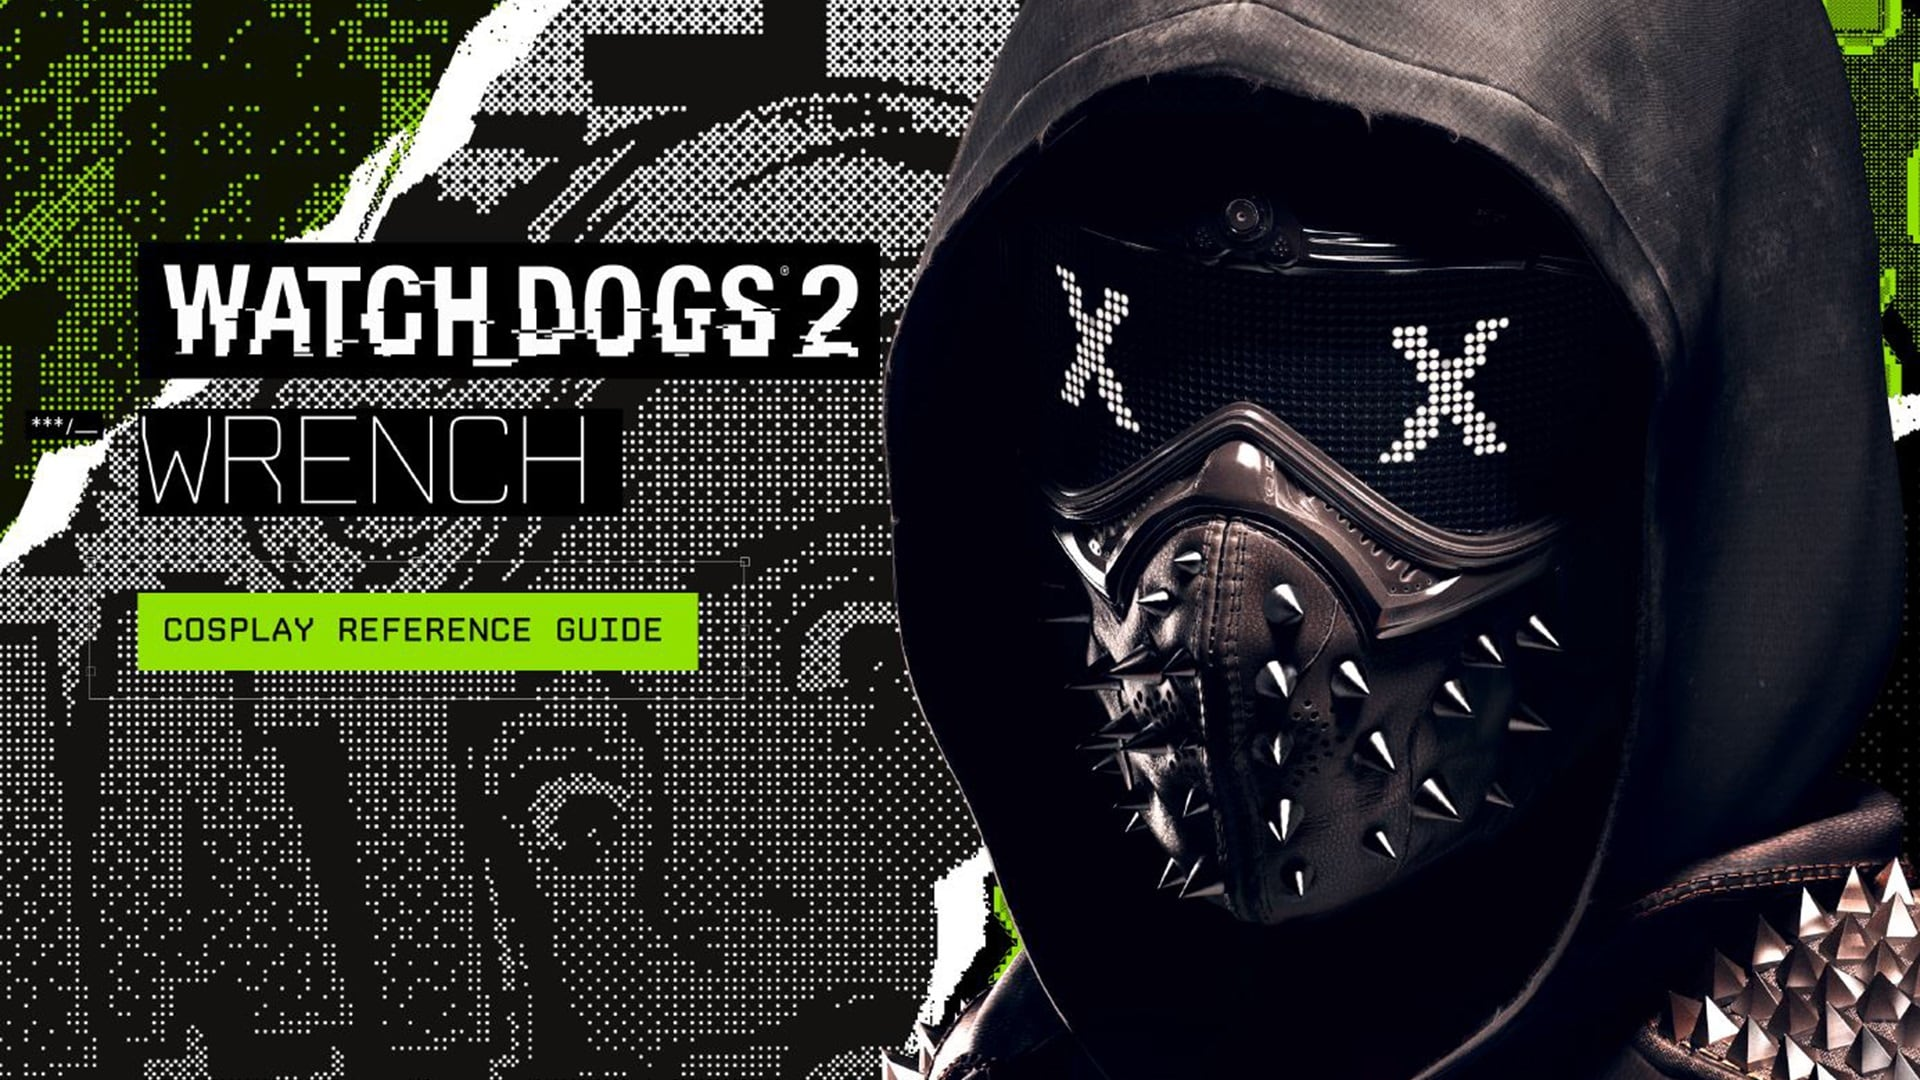 Watch Dogs 2 Wrench Fanart: Watch Dogs 2 Wrench Cosplay Guide